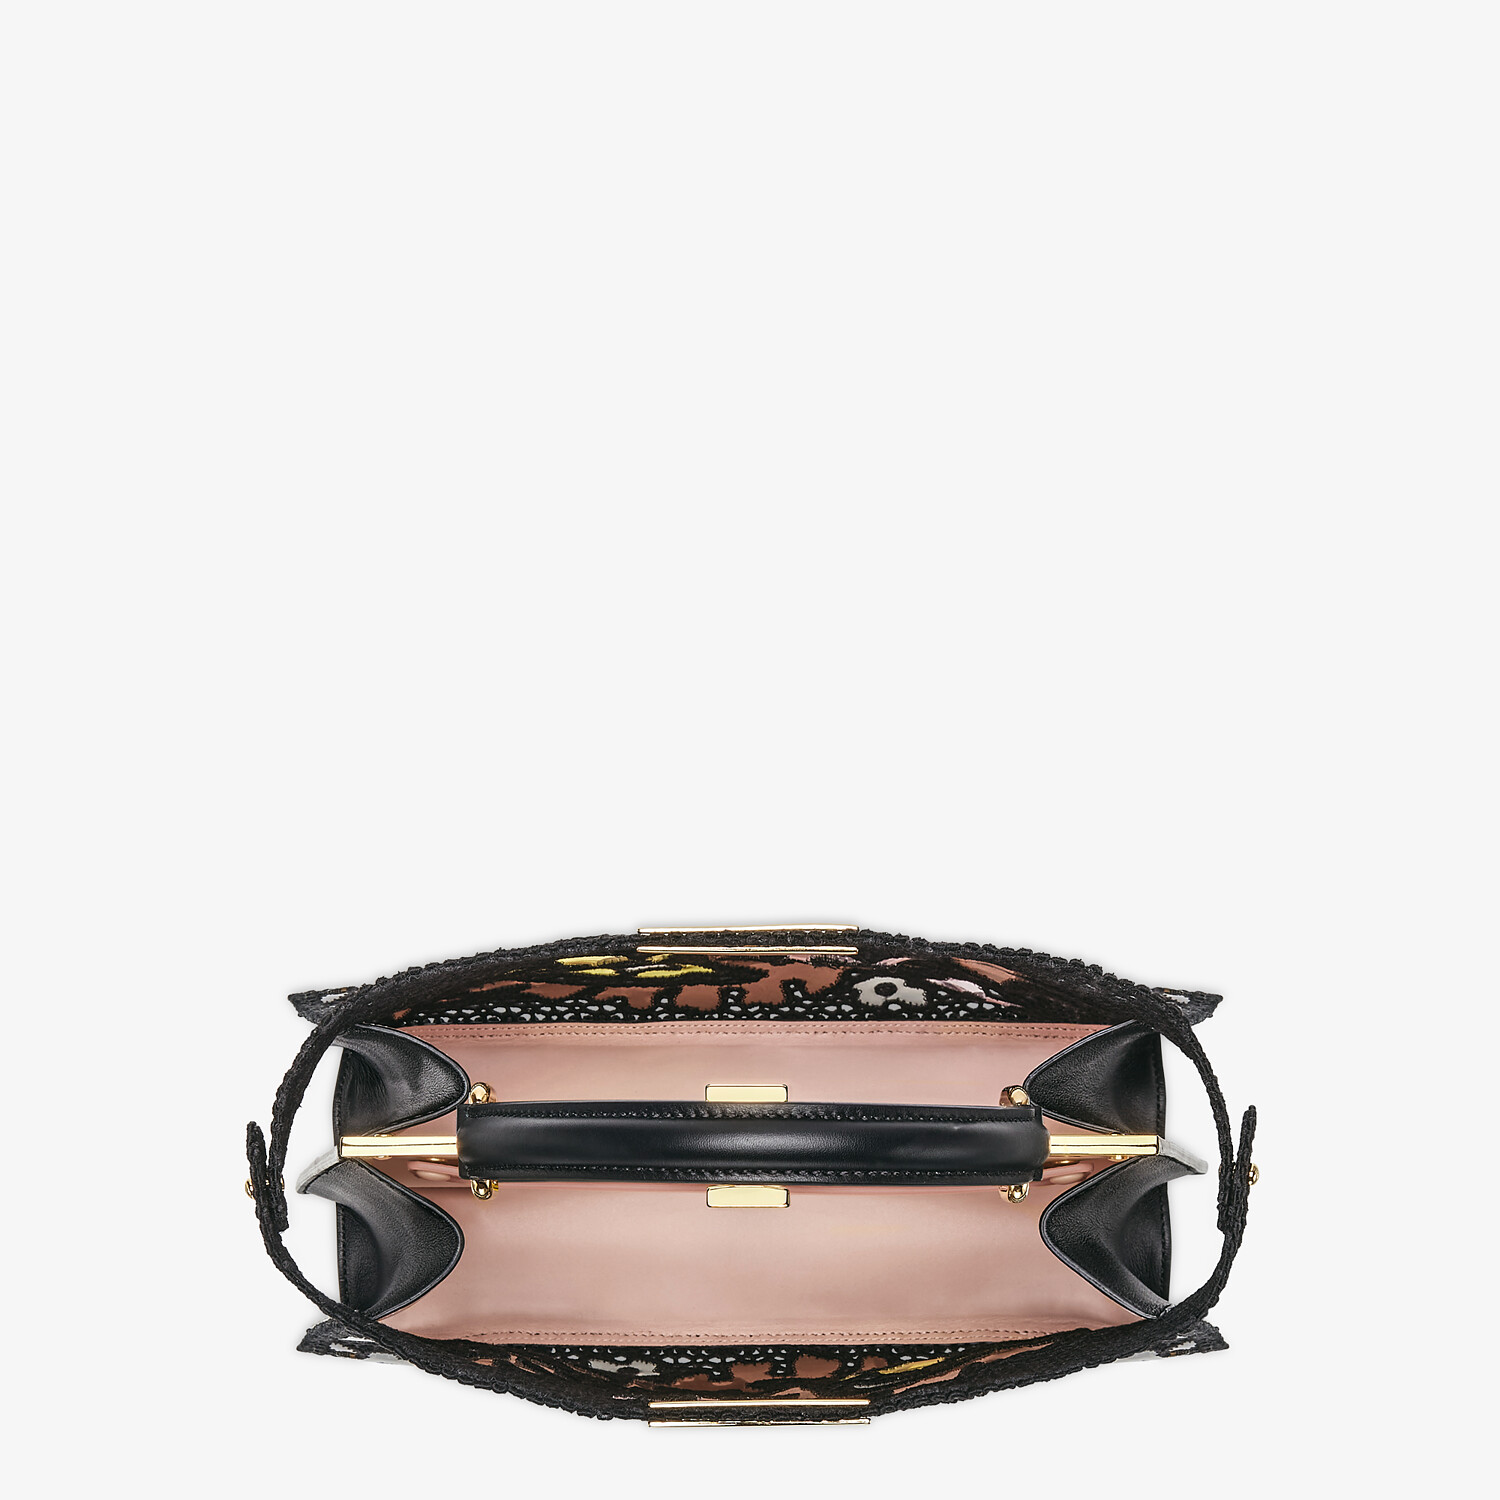 FENDI MEDIUM PEEKABOO ISEEU - Black lace bag - view 7 detail